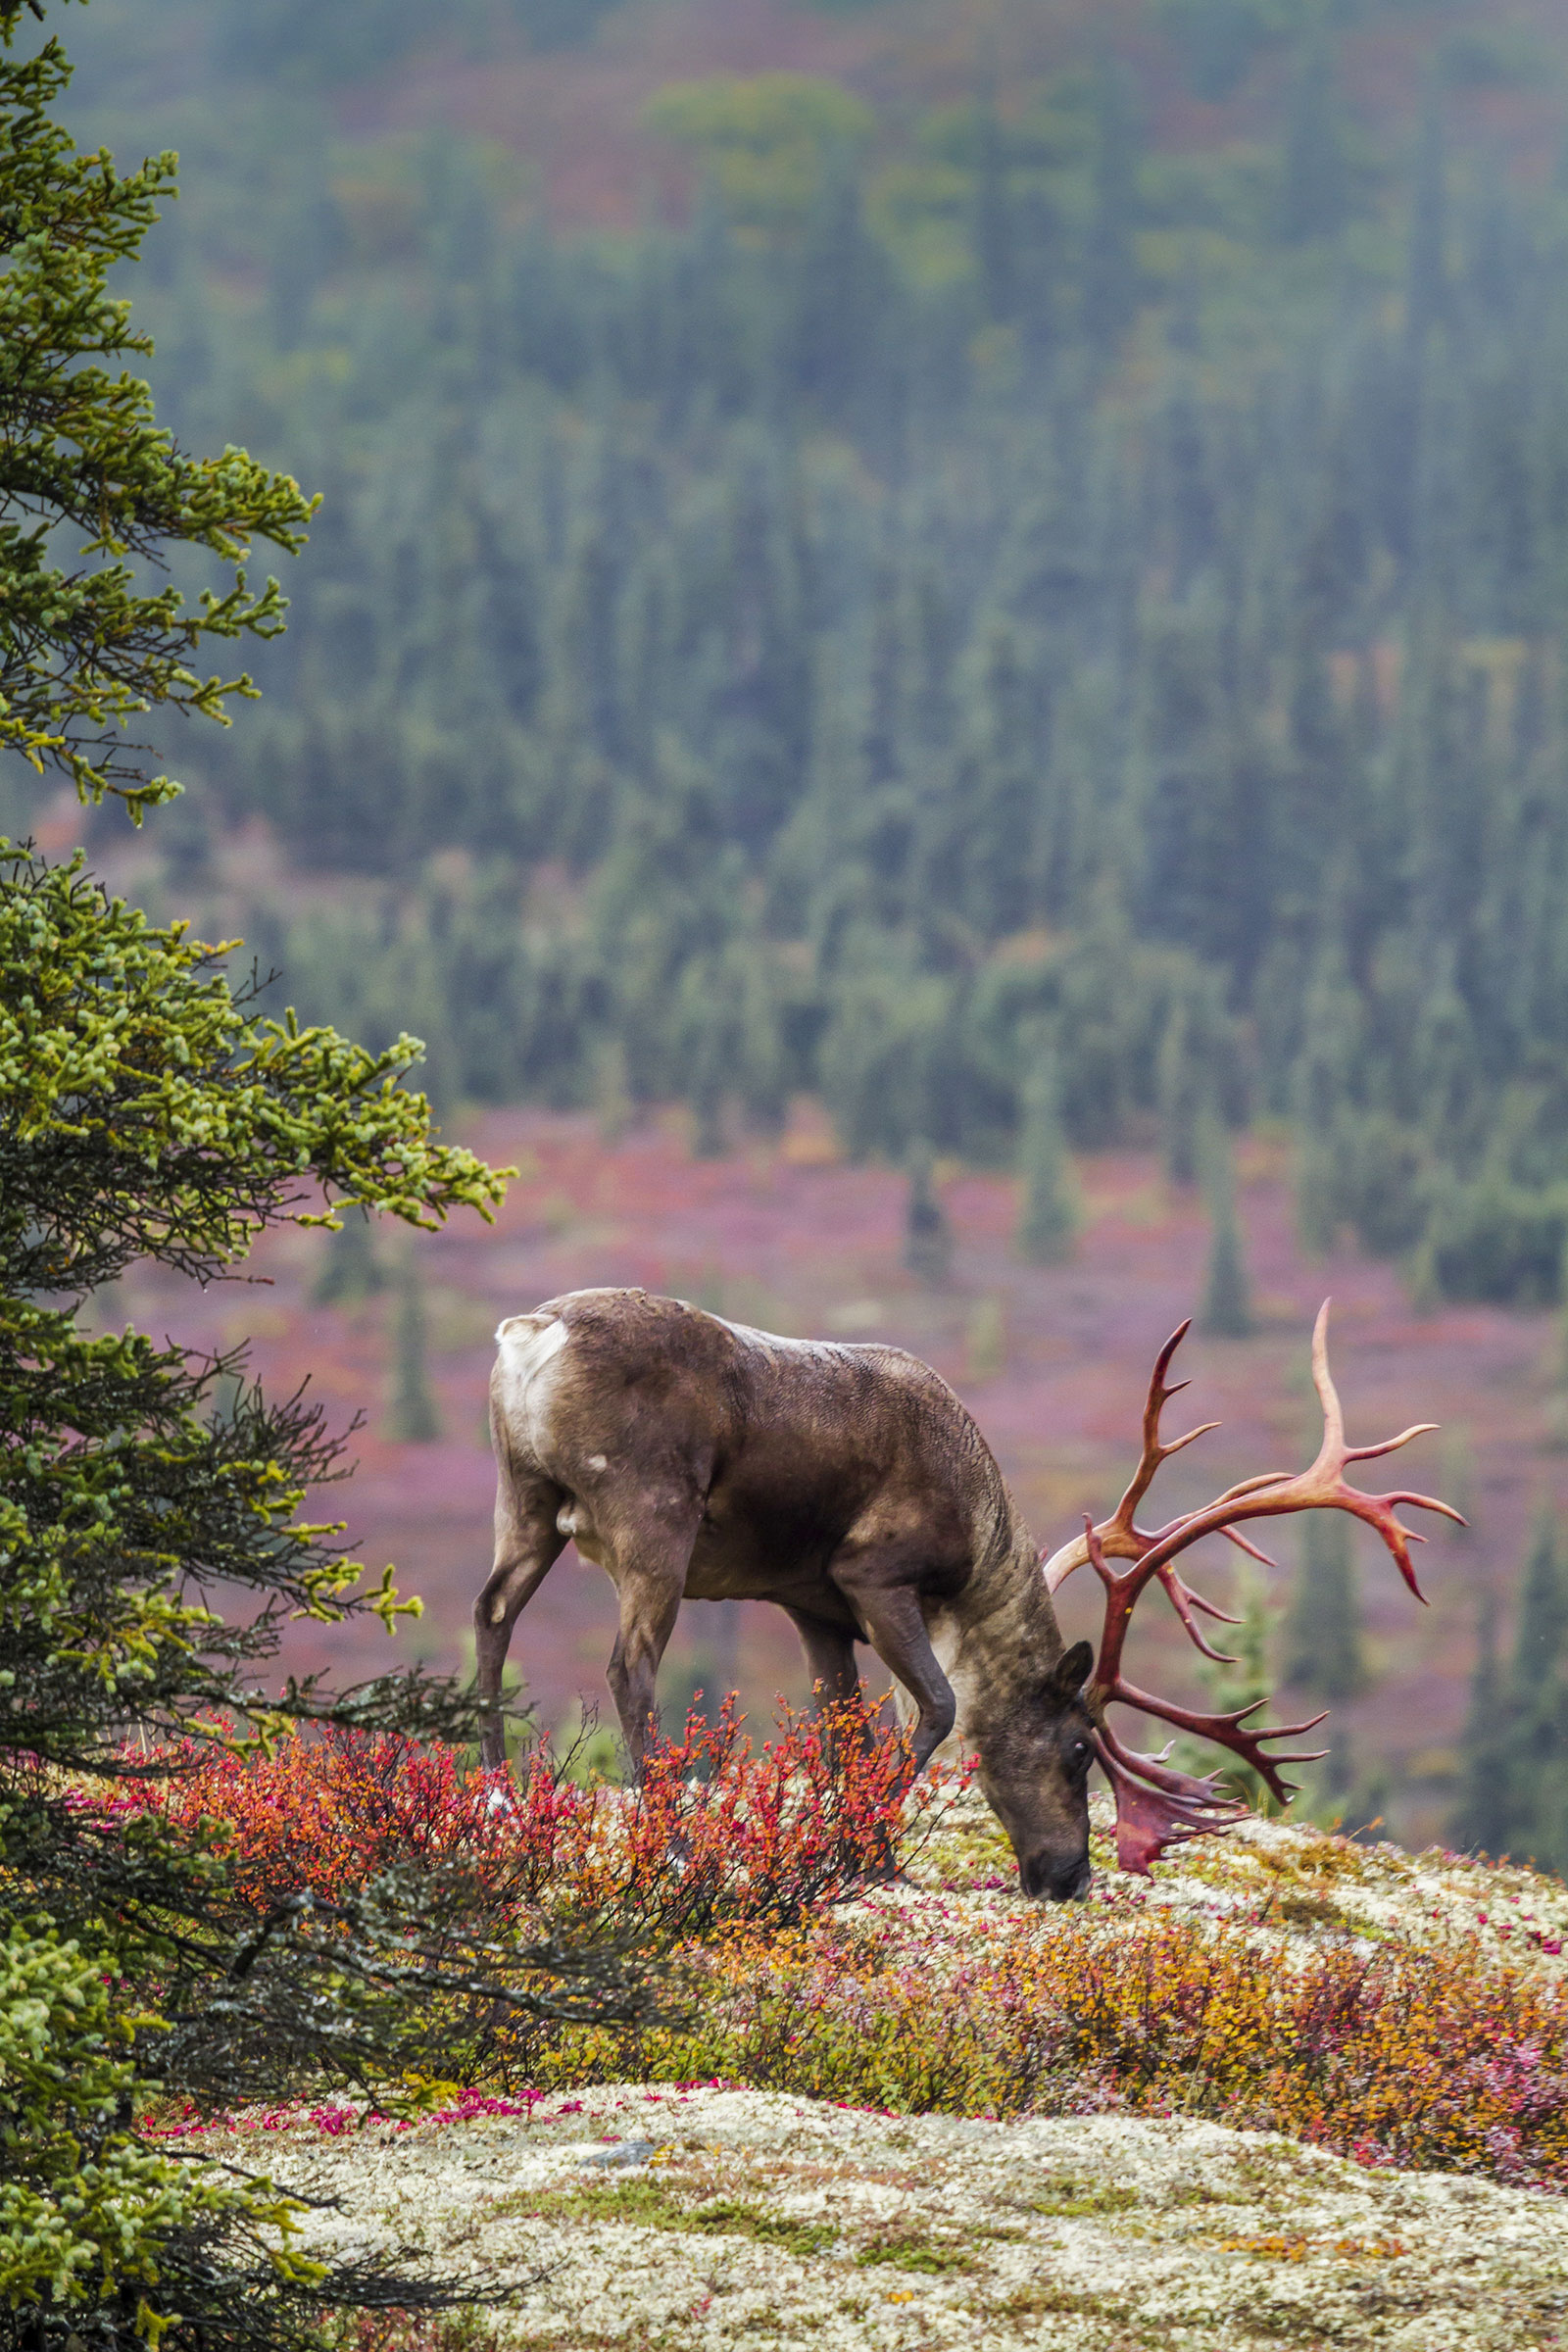 Caribou eating lichen in Alaska. Fires incinerate the lichen, forcing caribou off their traditional migratory routes to find other food sources. Design Pics Inc/Alamy